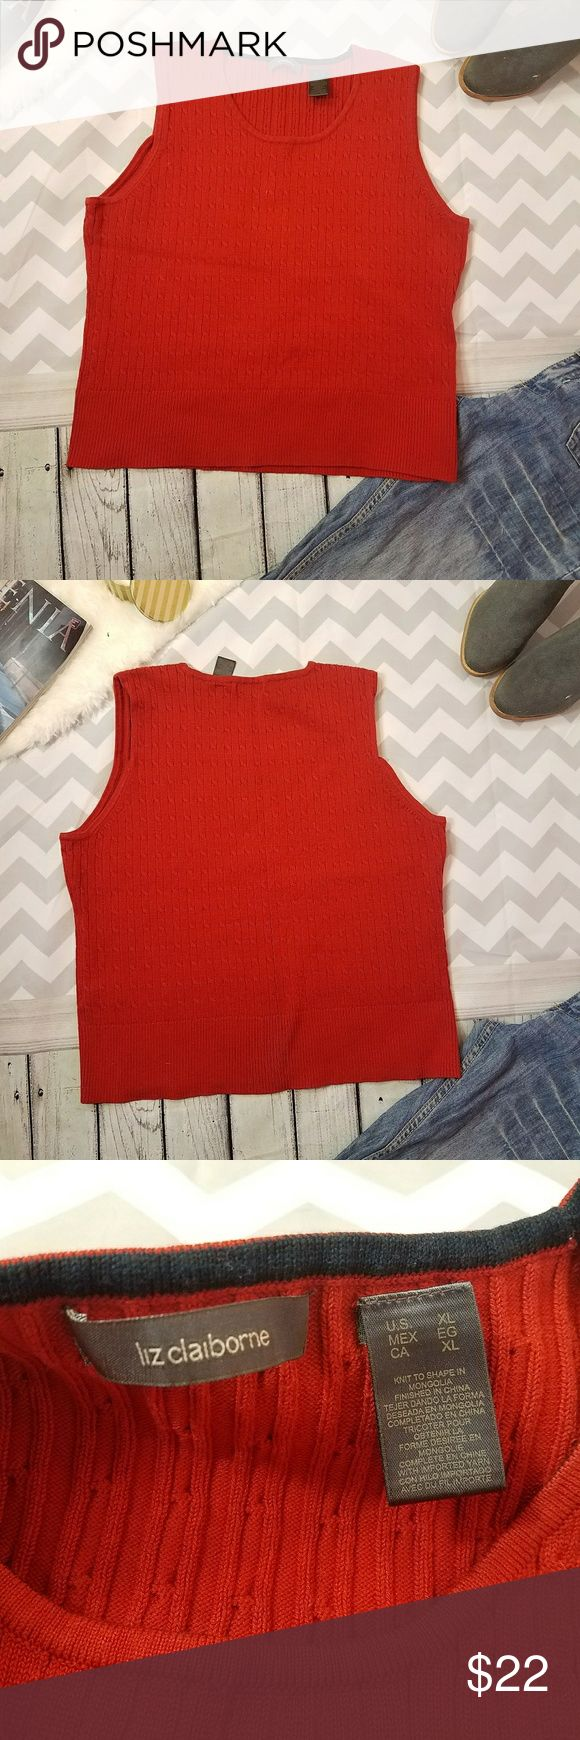 Liz Claiborne Valentine❤cable knit sweater Vest ✔Super cute red cable knitted cotton sleevless sweater  ✔Super adorable and cute ✔Looks great under black or navy cardigan with black mini skirt or black legging ✔82% cotton 👌 ✔No stains or Flaws  ✔tag says Size Xl but I think fits Large better ✔Please see the picture for Measurements ✔19.5 inches pit to pit Liz Claiborne Sweaters